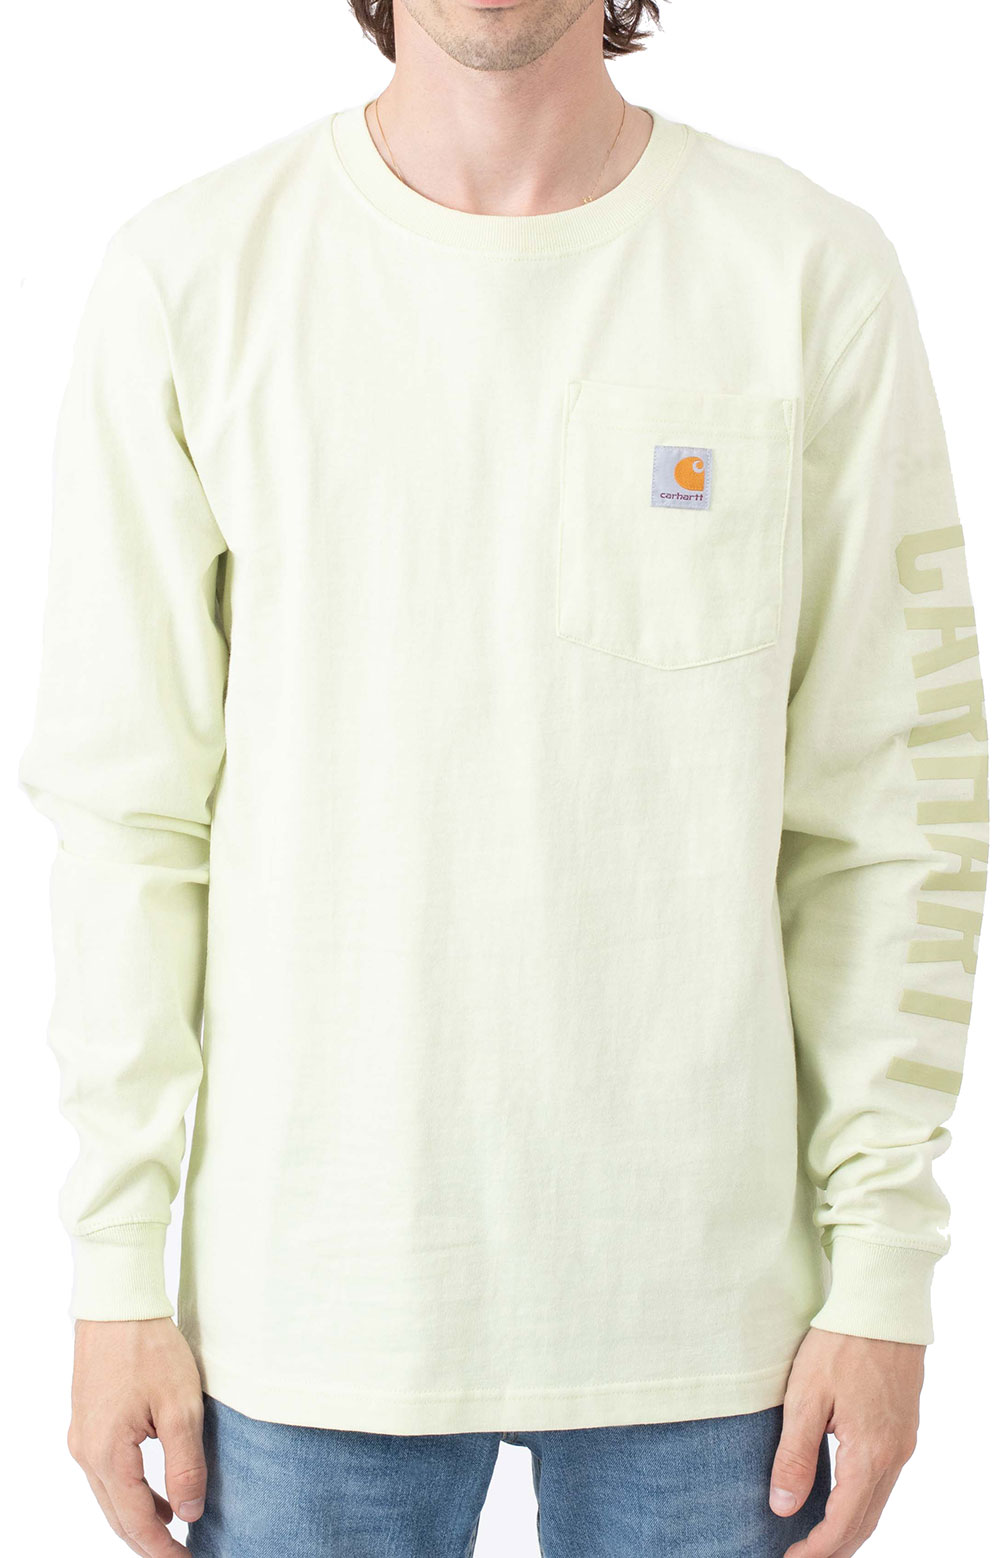 (105041) Relaxed Fit Heavyweight L/S Pocket Logo Graphic T-Shirt - Pastel Lime